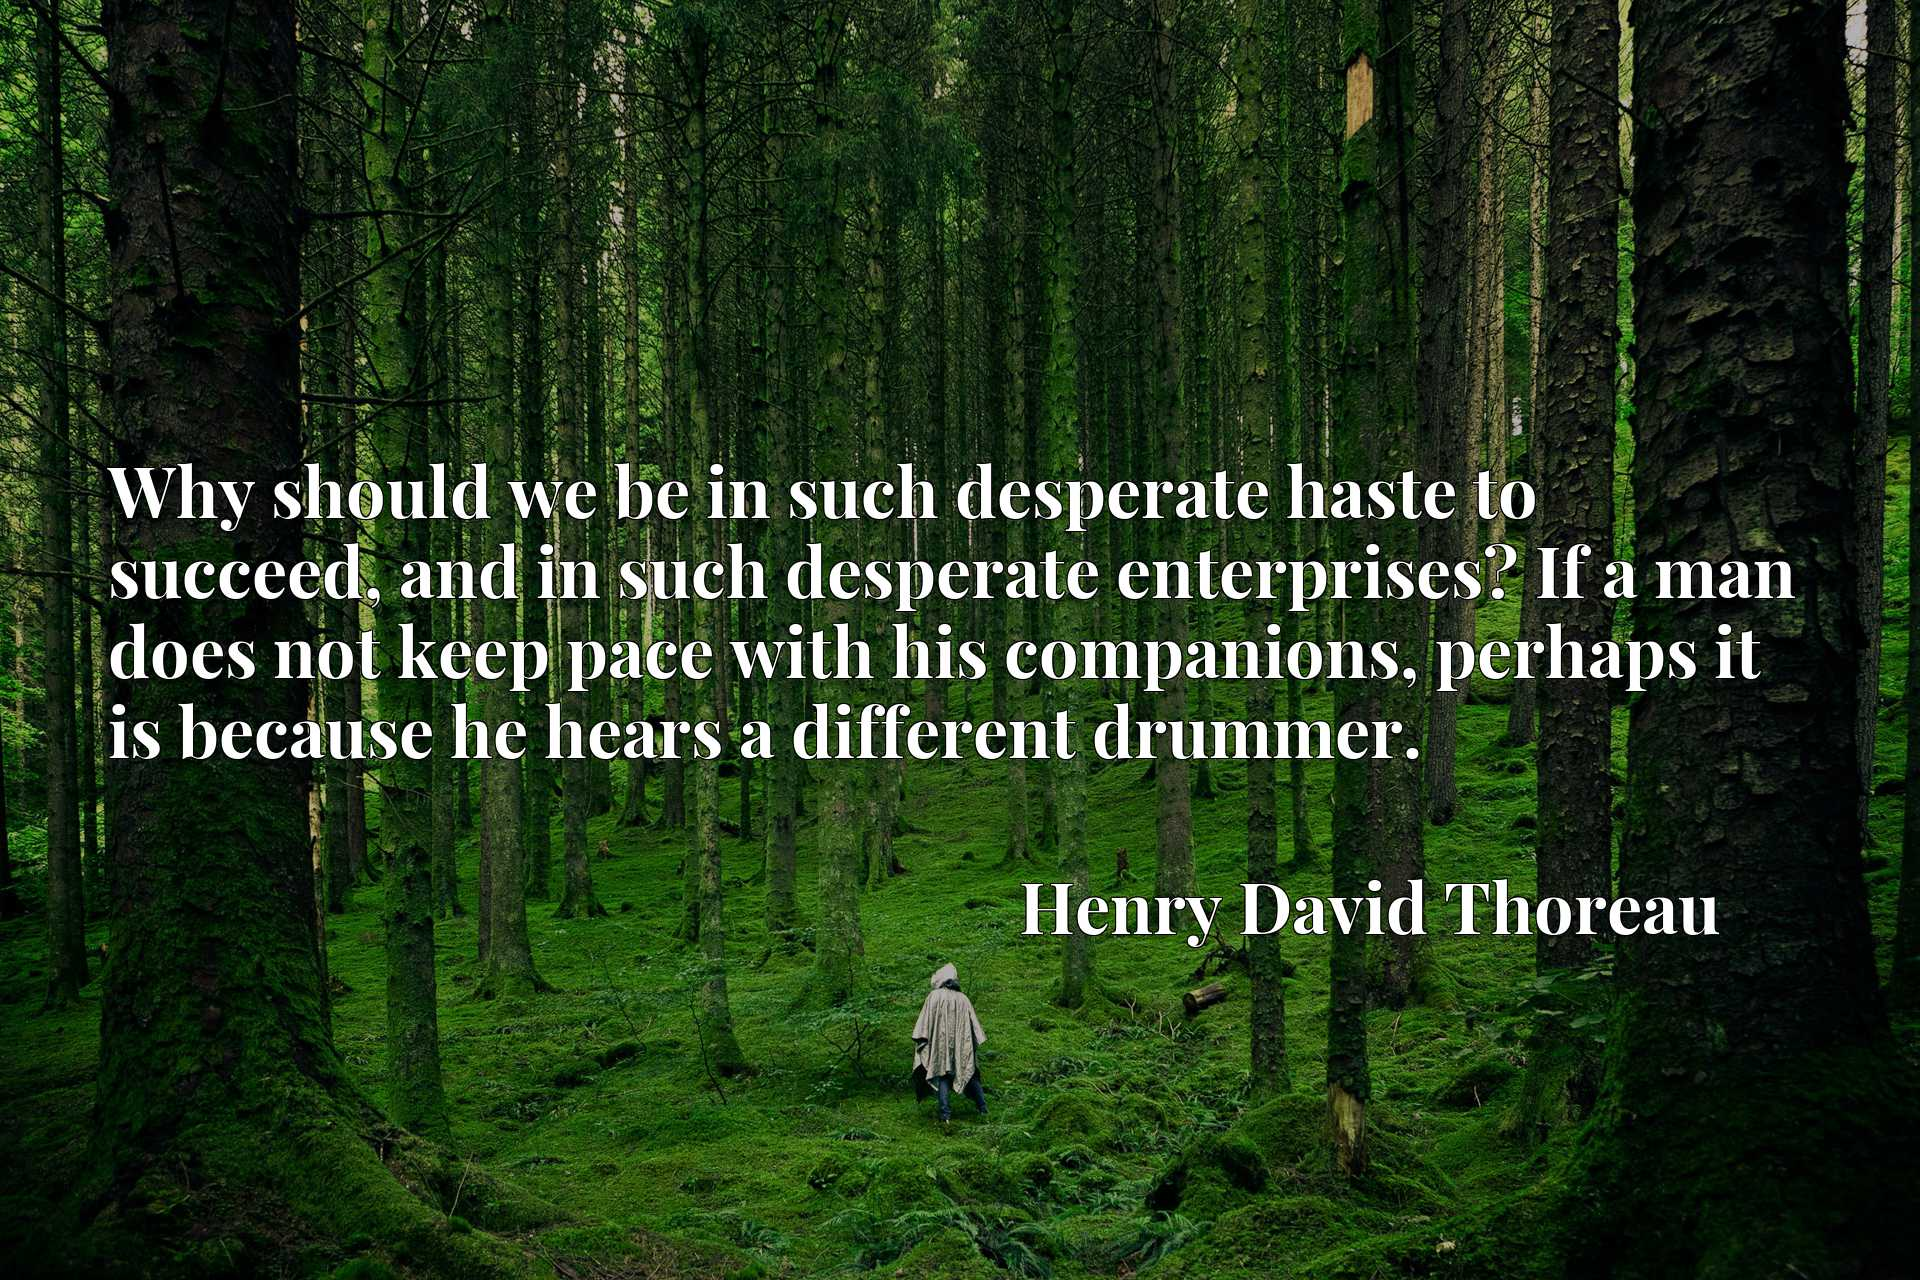 Why should we be in such desperate haste to succeed, and in such desperate enterprises? If a man does not keep pace with his companions, perhaps it is because he hears a different drummer.